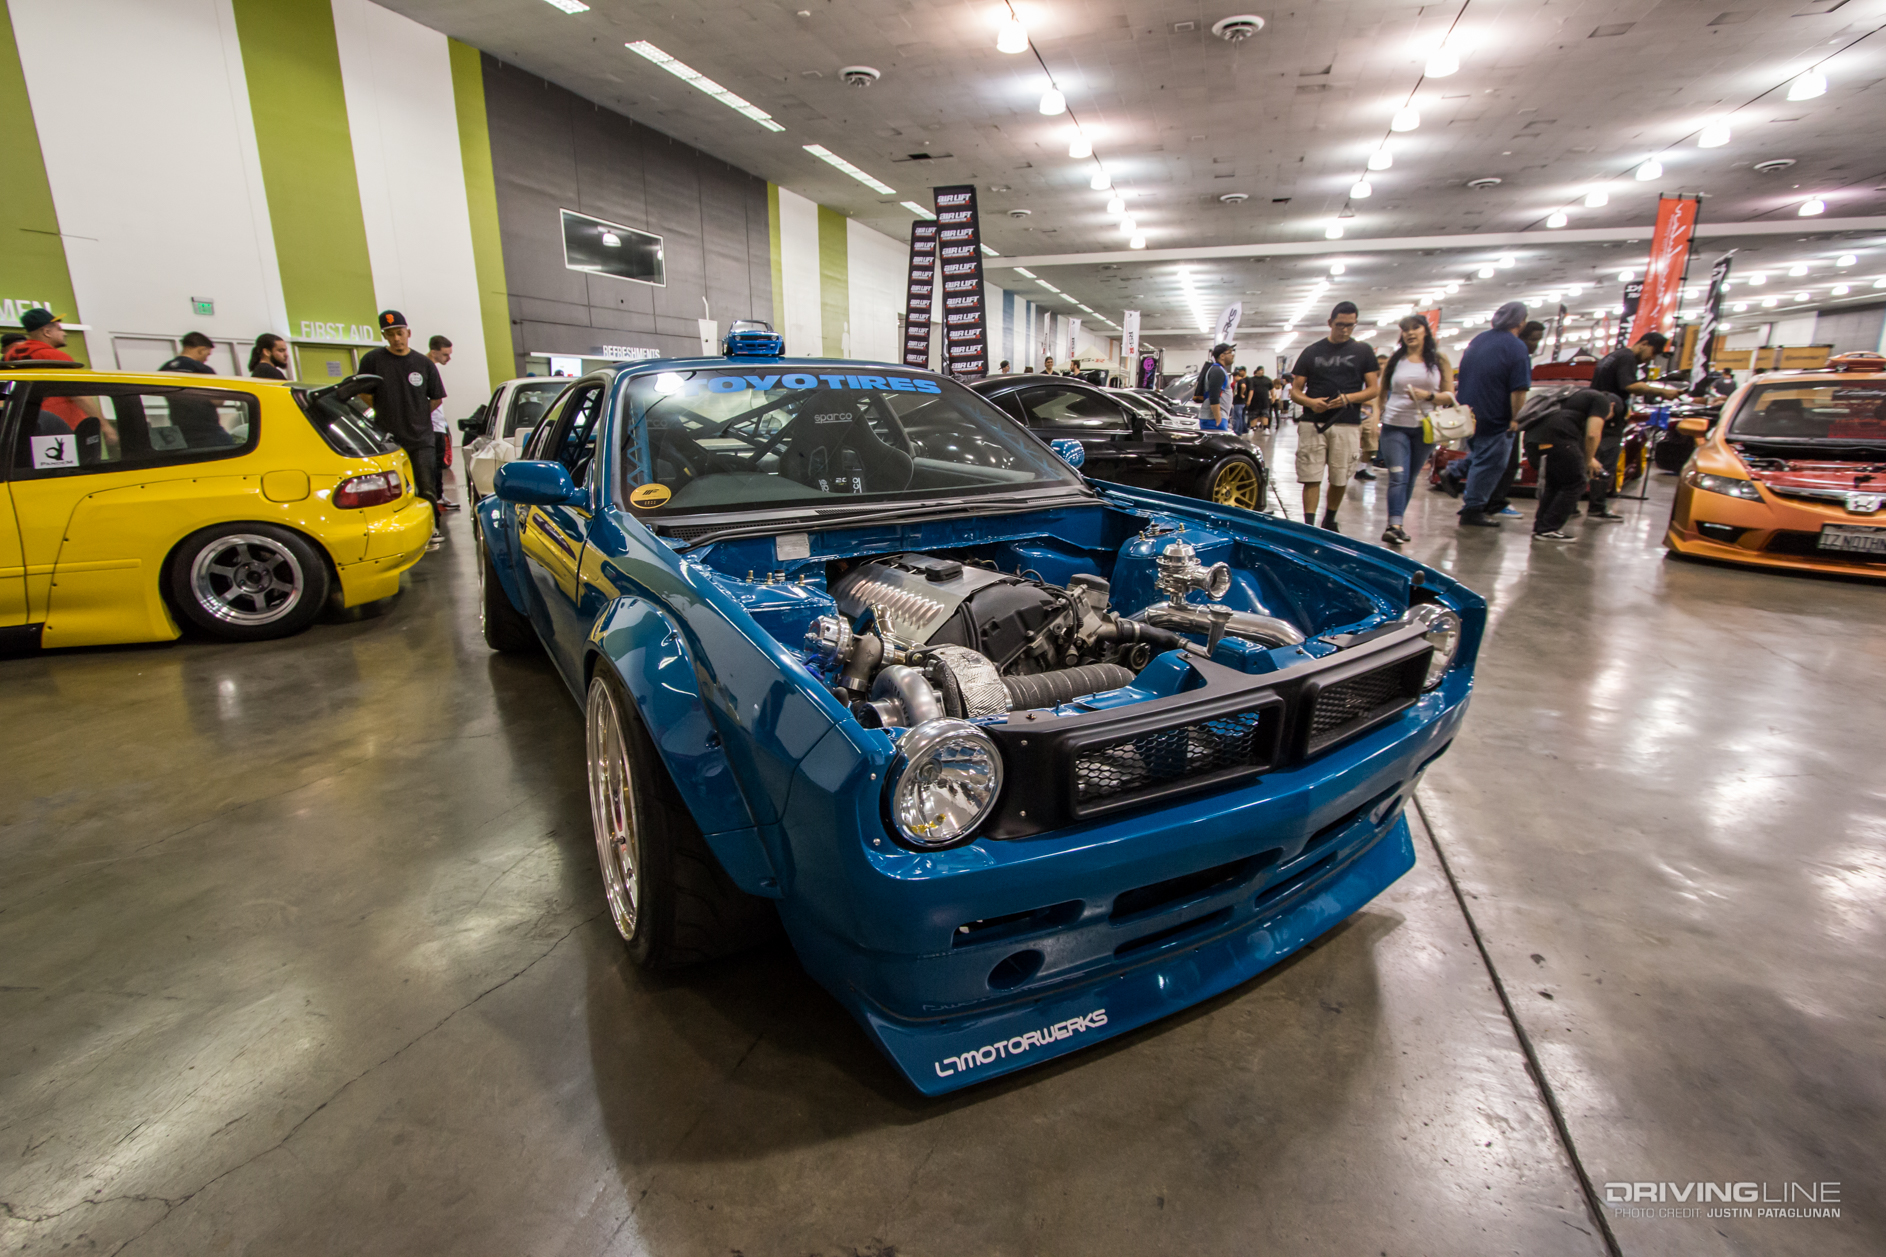 The Top 7 Show Cars of Wekfest San Jose 2016